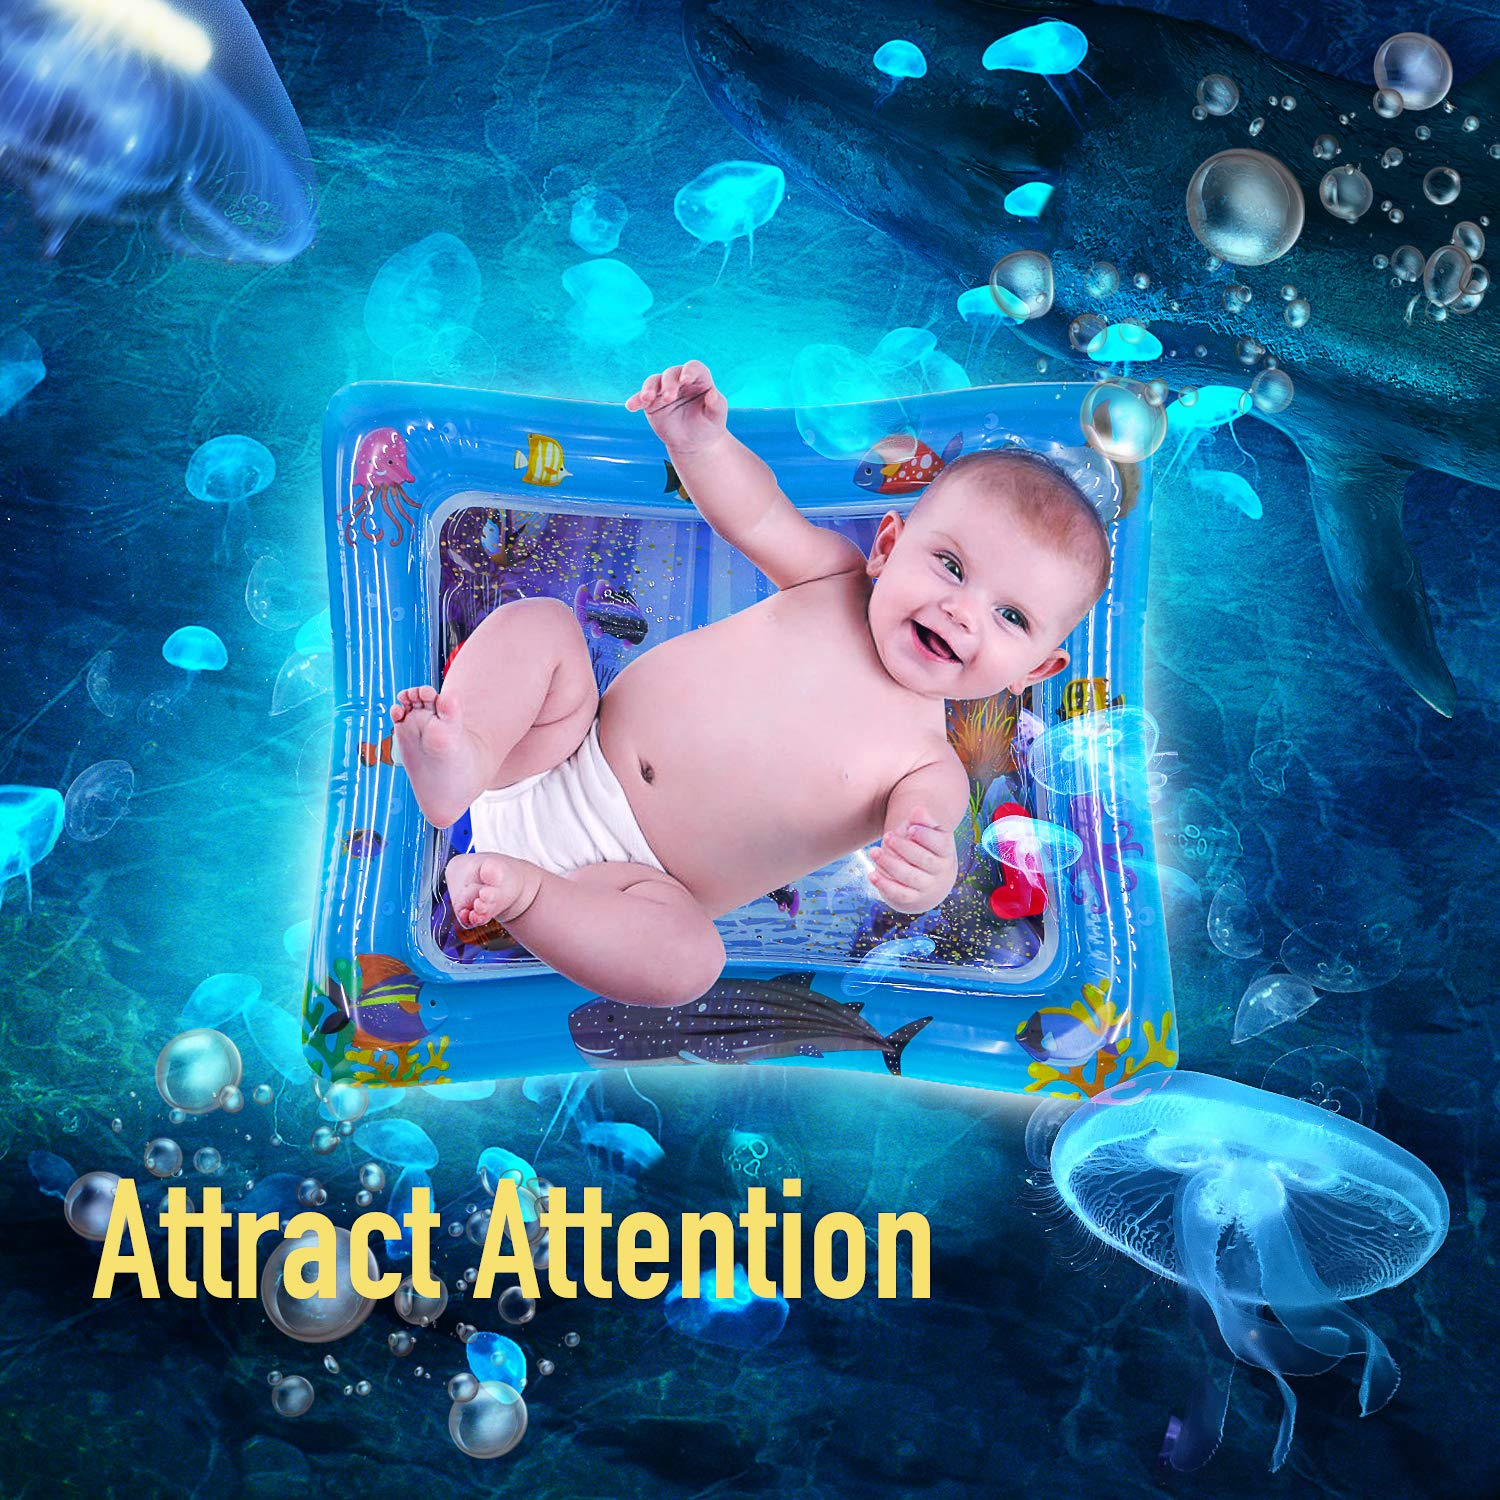 Gift-Random Color Water Play Mat Baby Inflatable Baby Tummy Time Water Pad Free-BPA Leakproof for Infants /& Toddlers Perfect Fun Time Play Activity Center Toys Stimulation Growth with Rattle